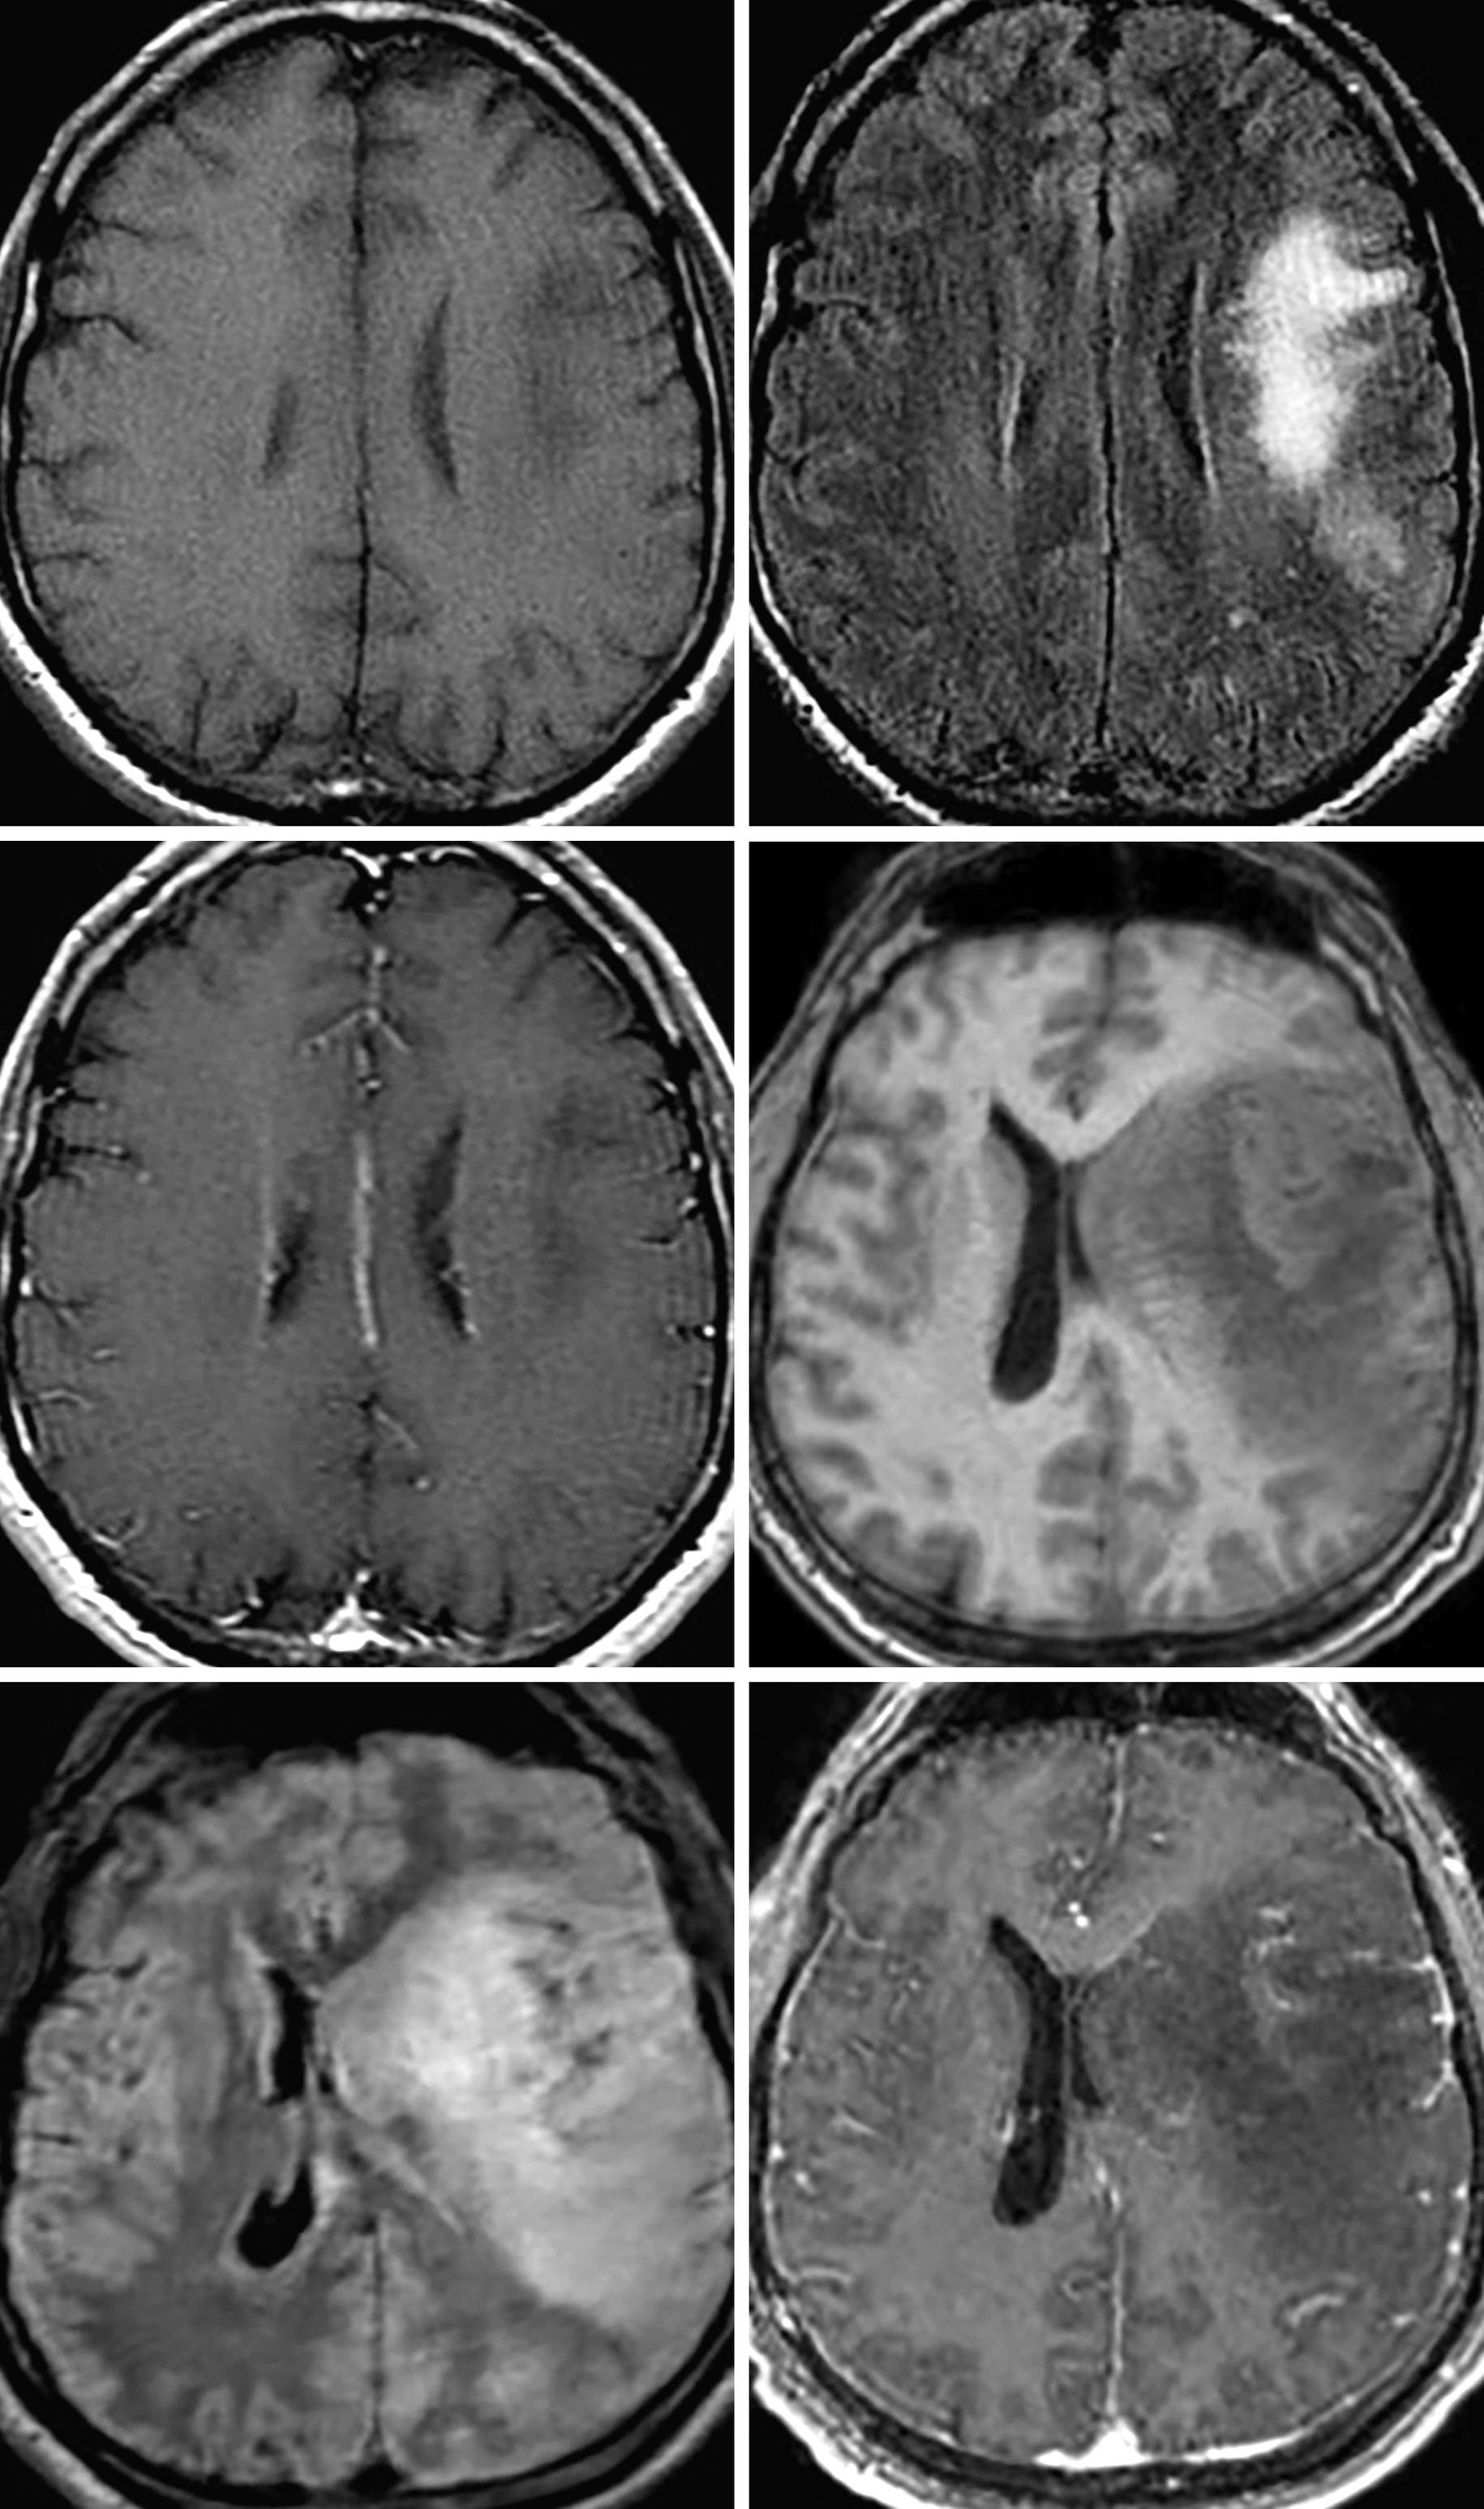 Figure 1: The images above are from an HIV positive patient with low CD4 count. The initial imaging demonstrated left dorsolateral frontal T1 hypointense (top row left), FLAIR hyperintense (top row right) signal that extends through the white matter even to involve the subcortical U fibers, findings that represent PML. The initial imaging was without abnormal enhancement. Six weeks after initiating HAART, the patient developed worsened neurologic deficits and shortly thereafter became obtunded. Followup imaging demonstrated significant interval worsening in the almost mass-like T1 hypointense signal (middle row right) with corresponding FLAIR hyperintense signal (bottom row left), increased mass effect with near complete effacement of the left lateral ventricle and mild left-to-right midline shift. There has been increased mild curvilinear enhancement in the left subinsular white matter (bottom row right), which is typical of IRIS.